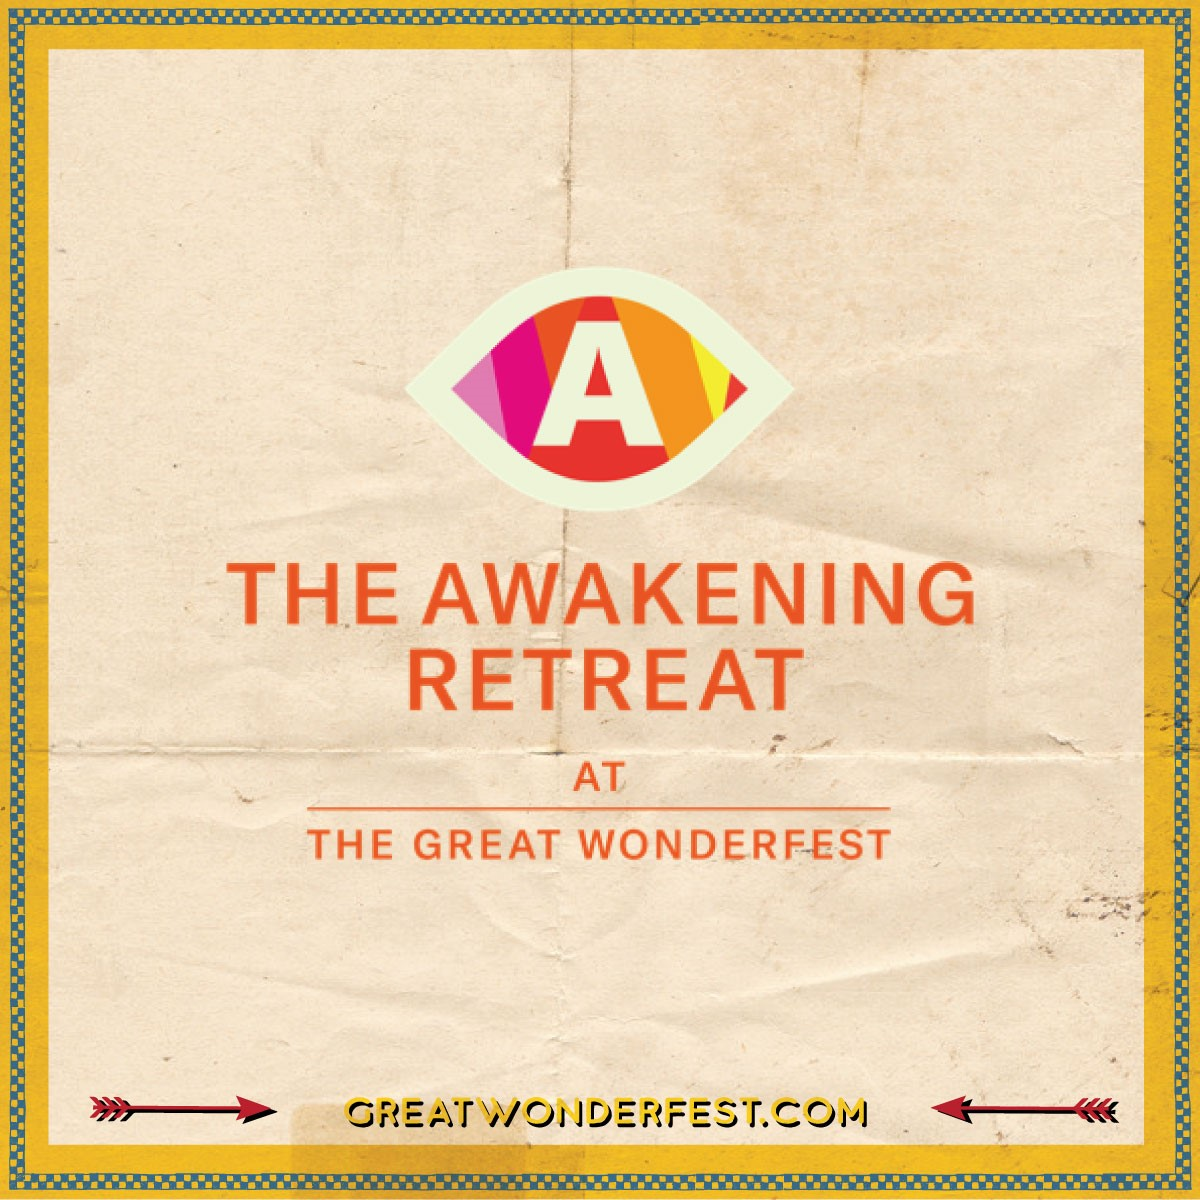 THE AWAKENING RETREAT AT THE GREAT WONDERFEST.jpg